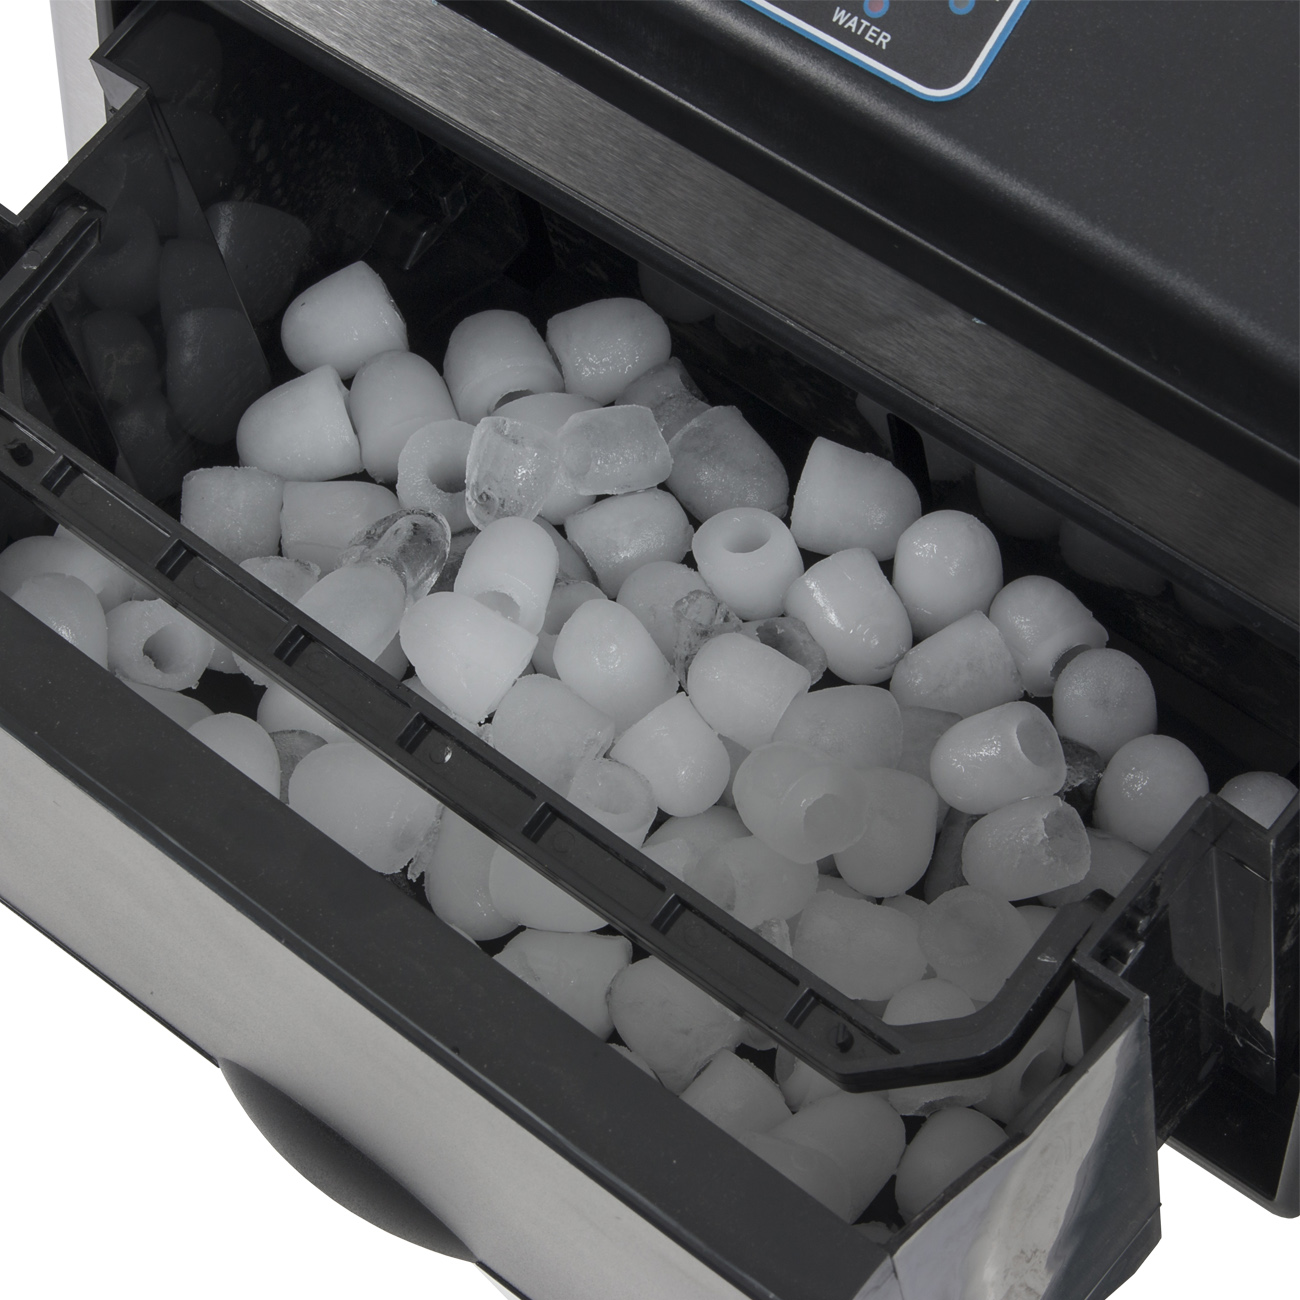 New 2in1 Water Dispenser With Built In Ice Maker Machine